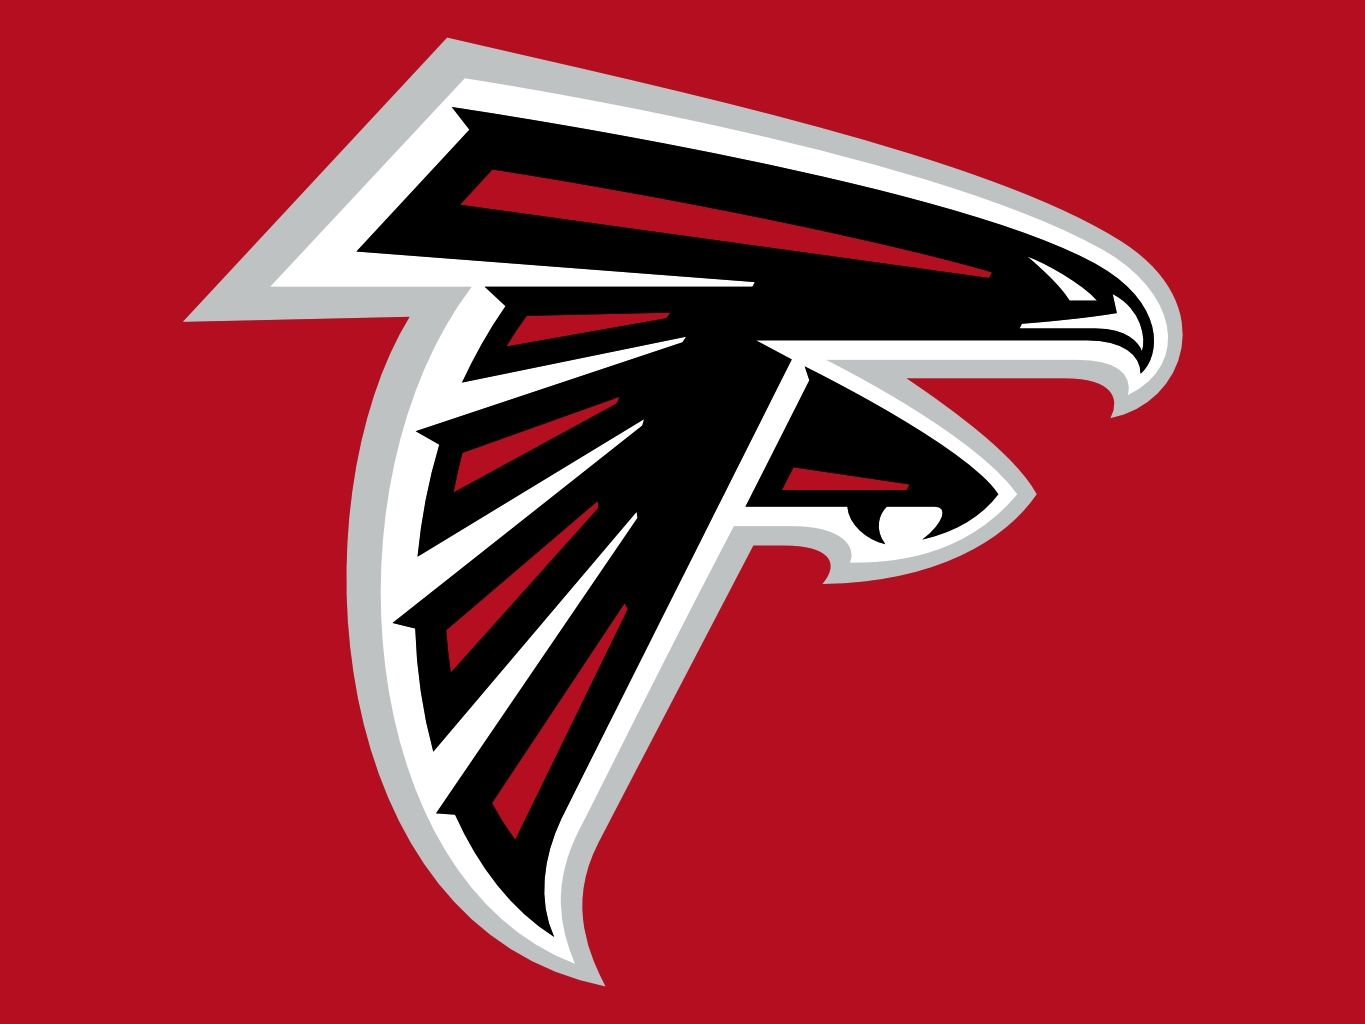 Atlanta Falcons Logo Http Www Atlantafalcons Com Http Pinterest Com Nfldraftday Atlanta Falcons Football Nfl Teams Logos Atlanta Falcons Logo